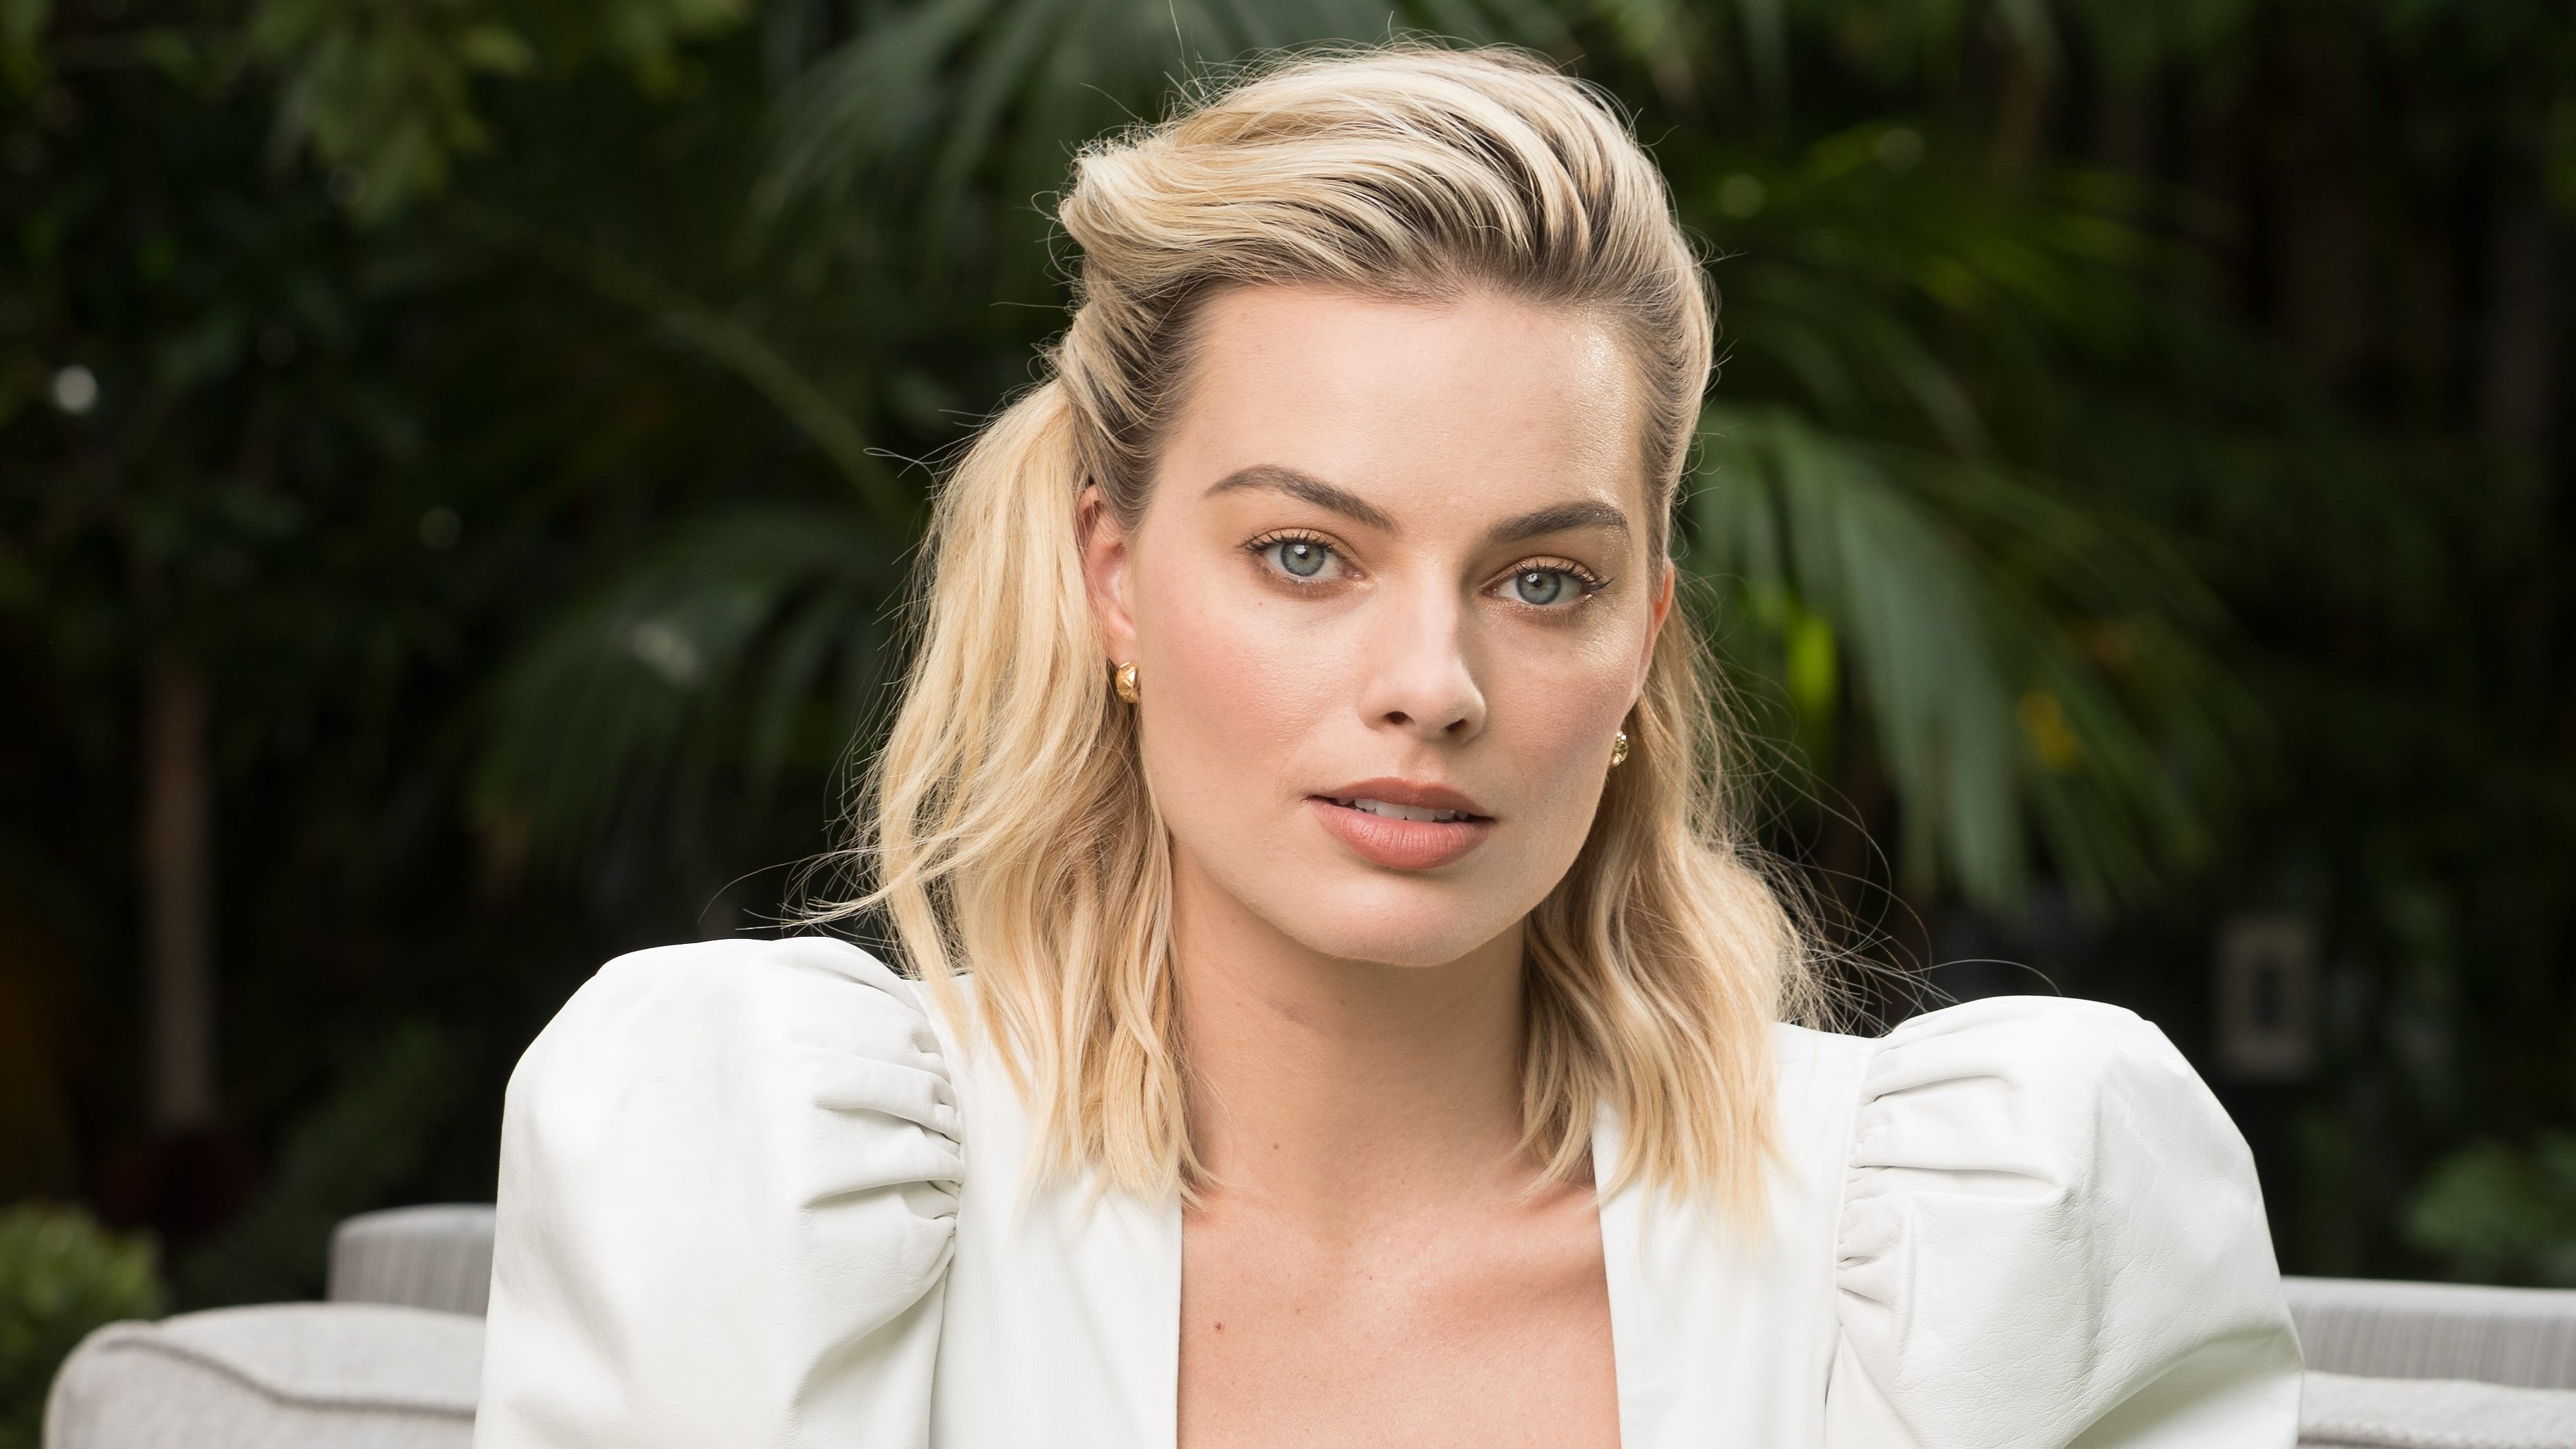 Margot Robbie Playing Queen Elizabeth I Gets Honest About Hollywood